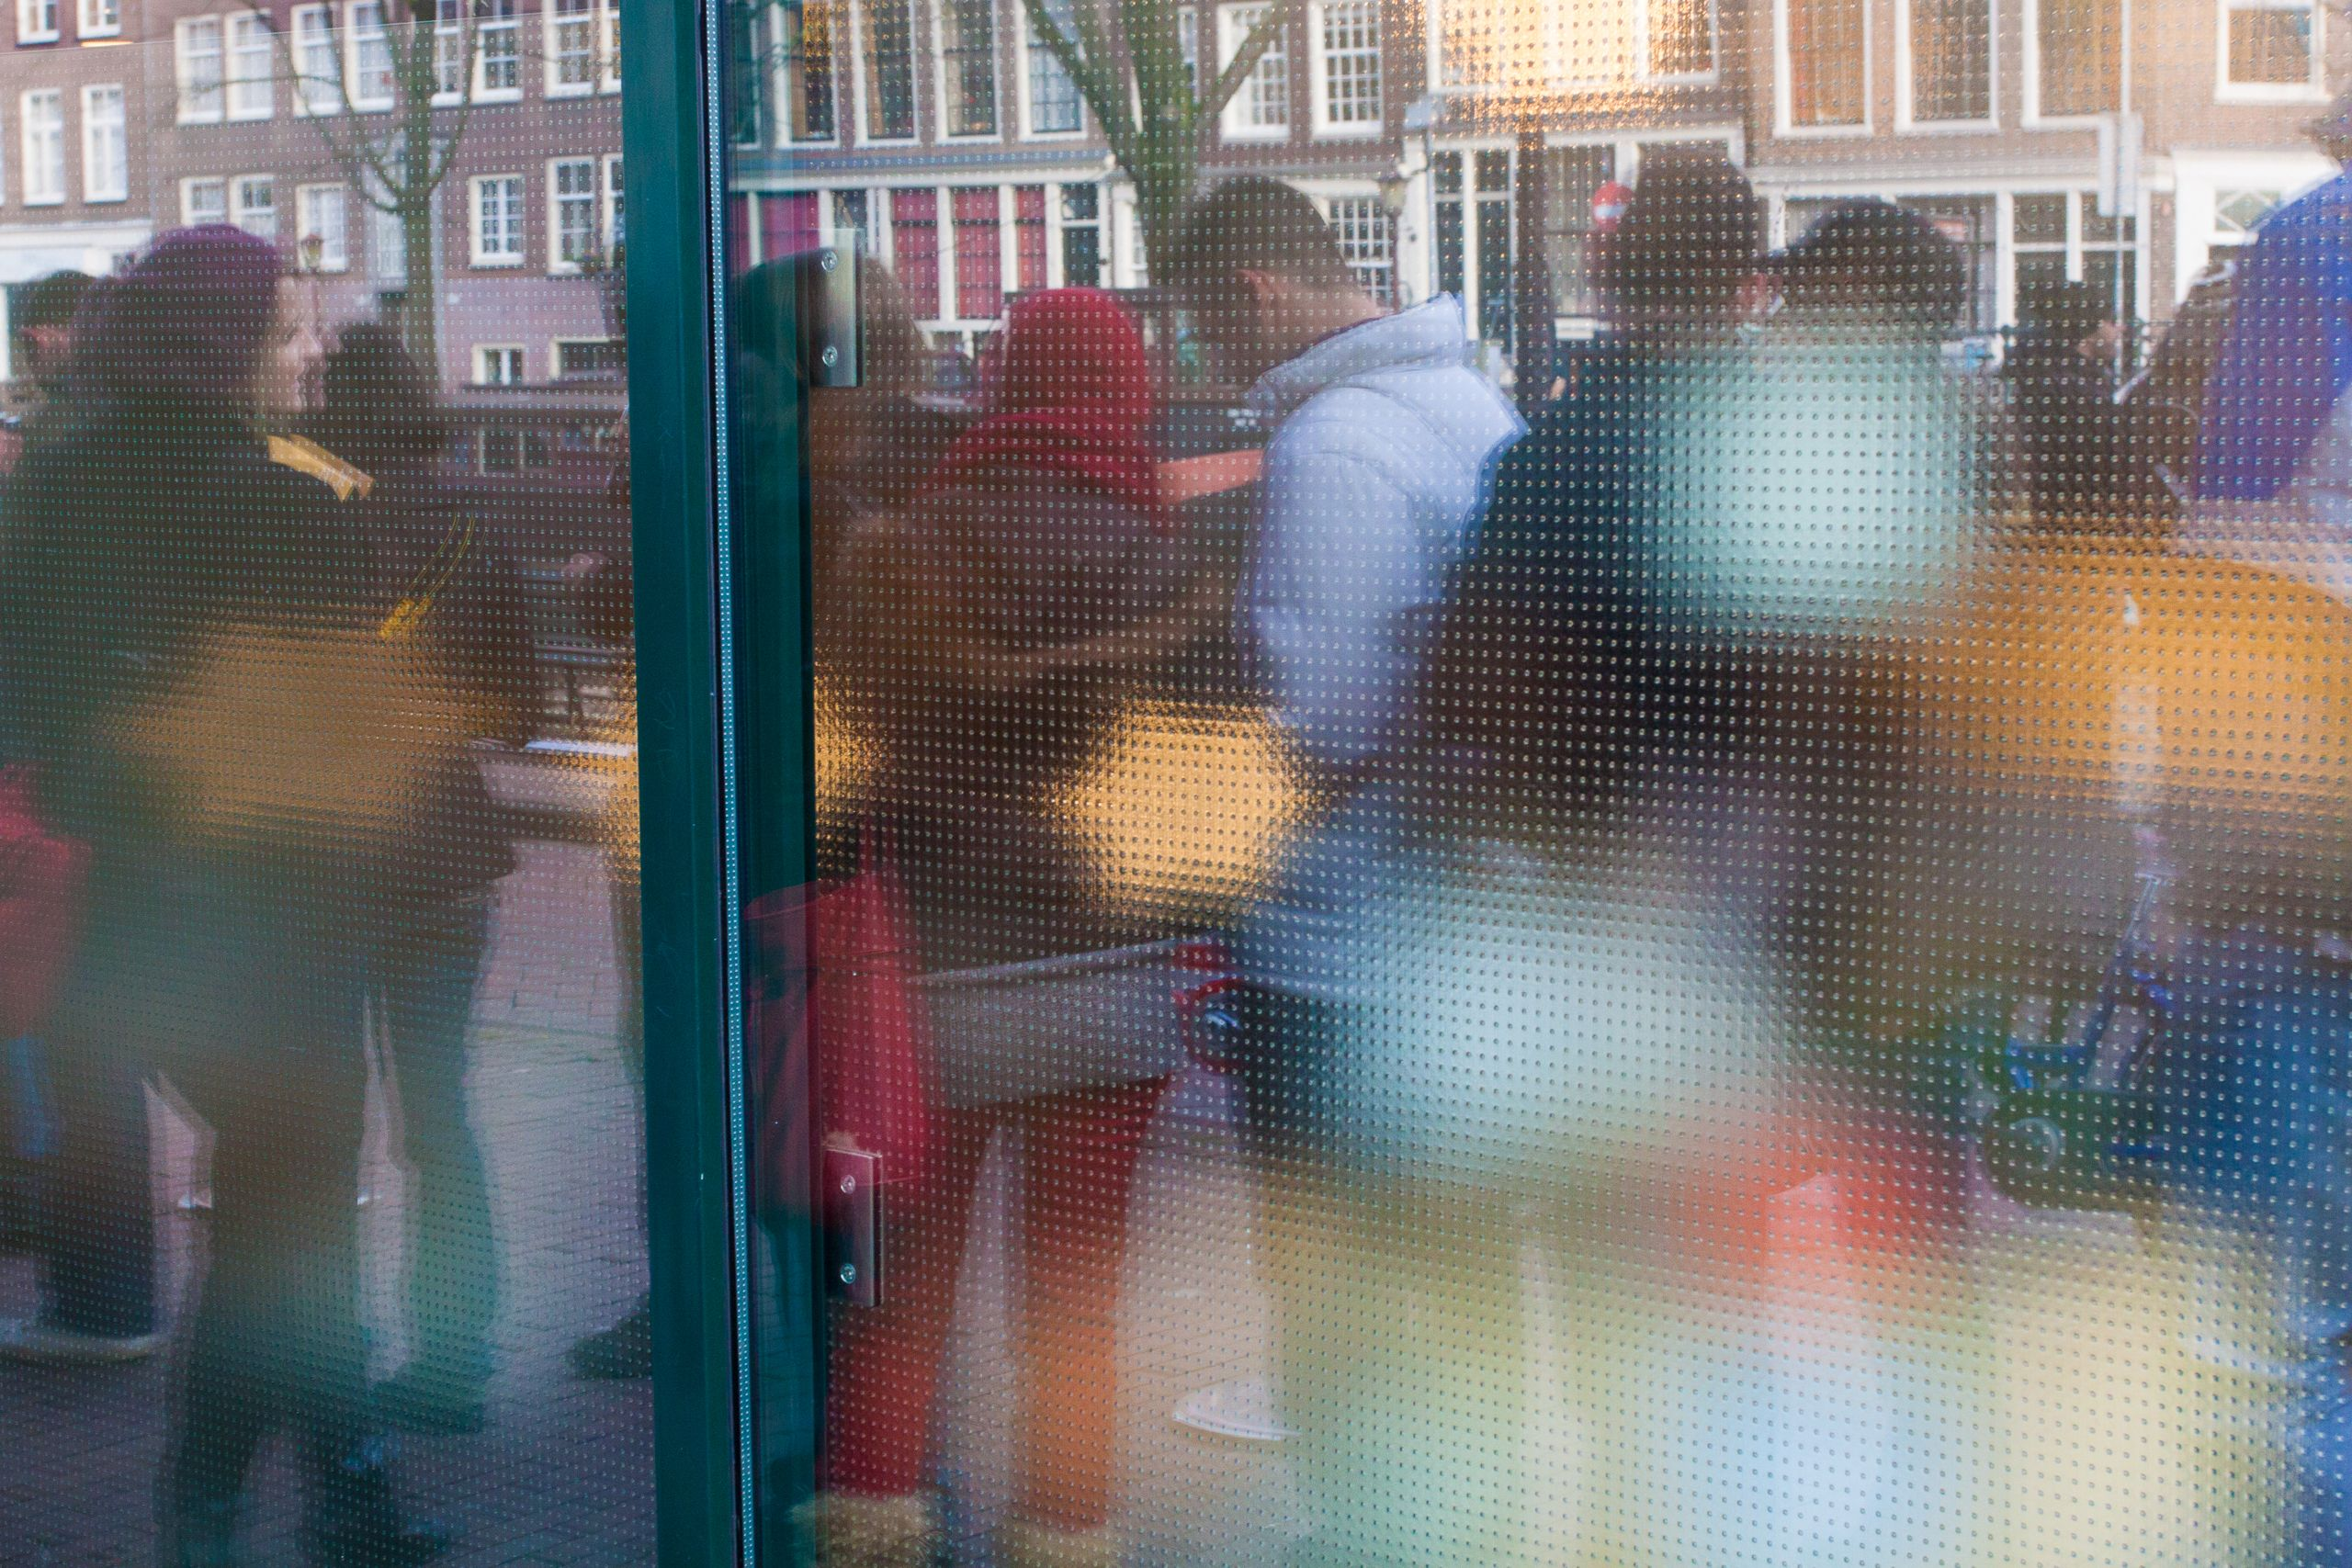 Visitors Wait In Line at the Anne Frank House